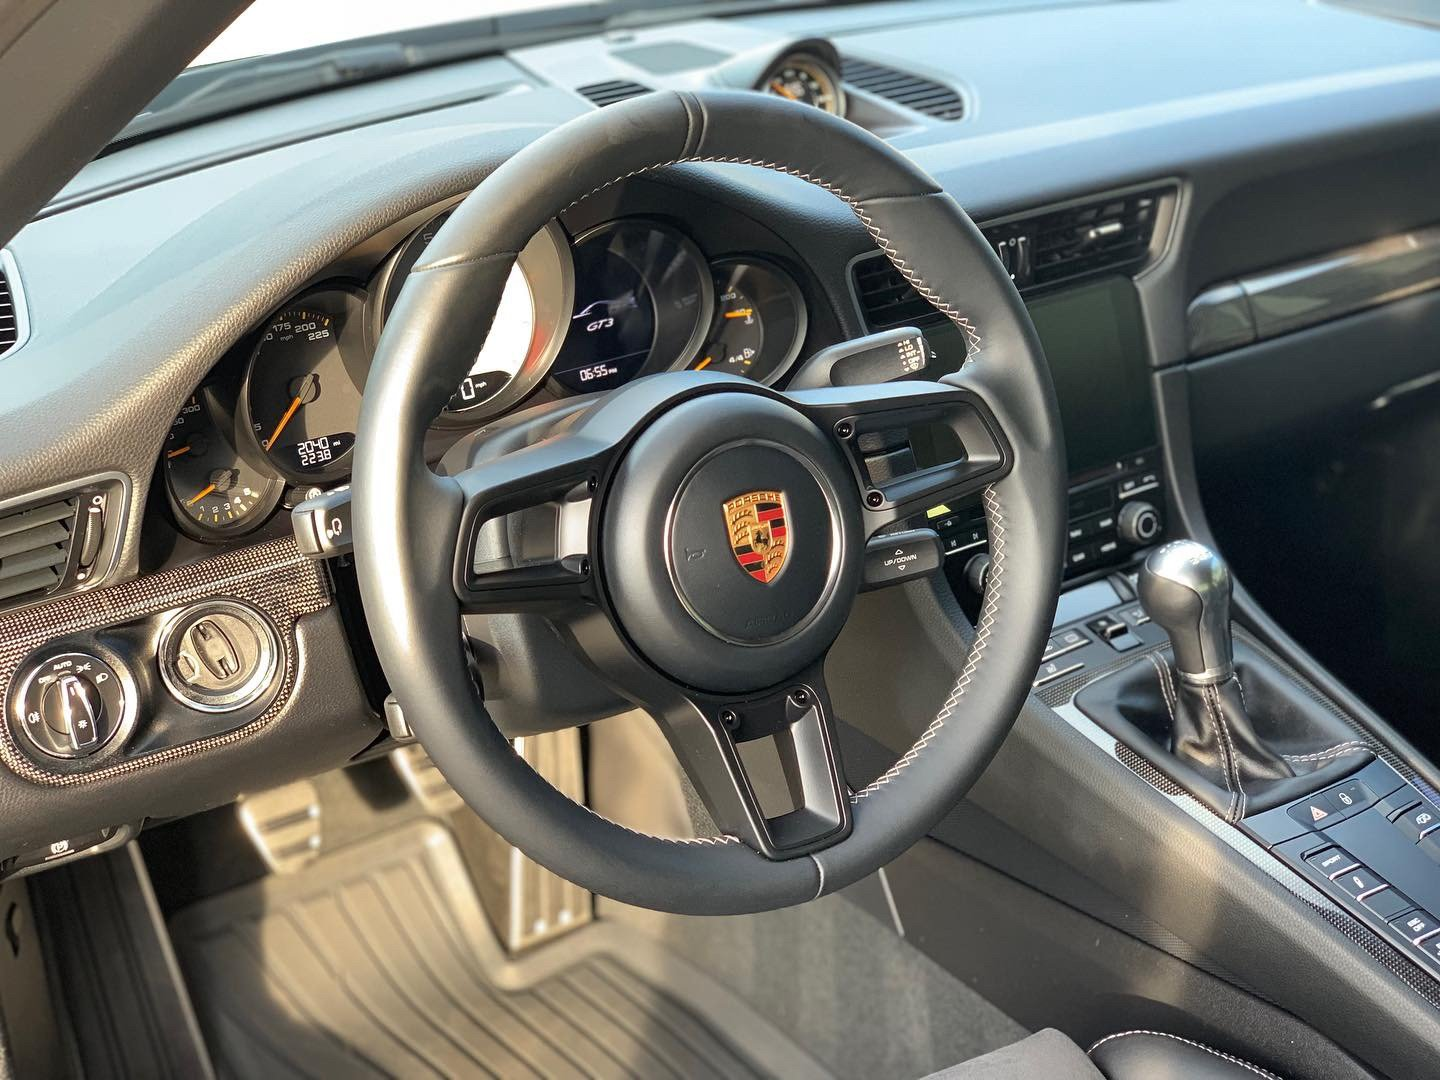 2018 Porsche 911 GT3 ( 991.2 ) Manual 6 speed Black $158.9k For Sale (picture 5 of 6)